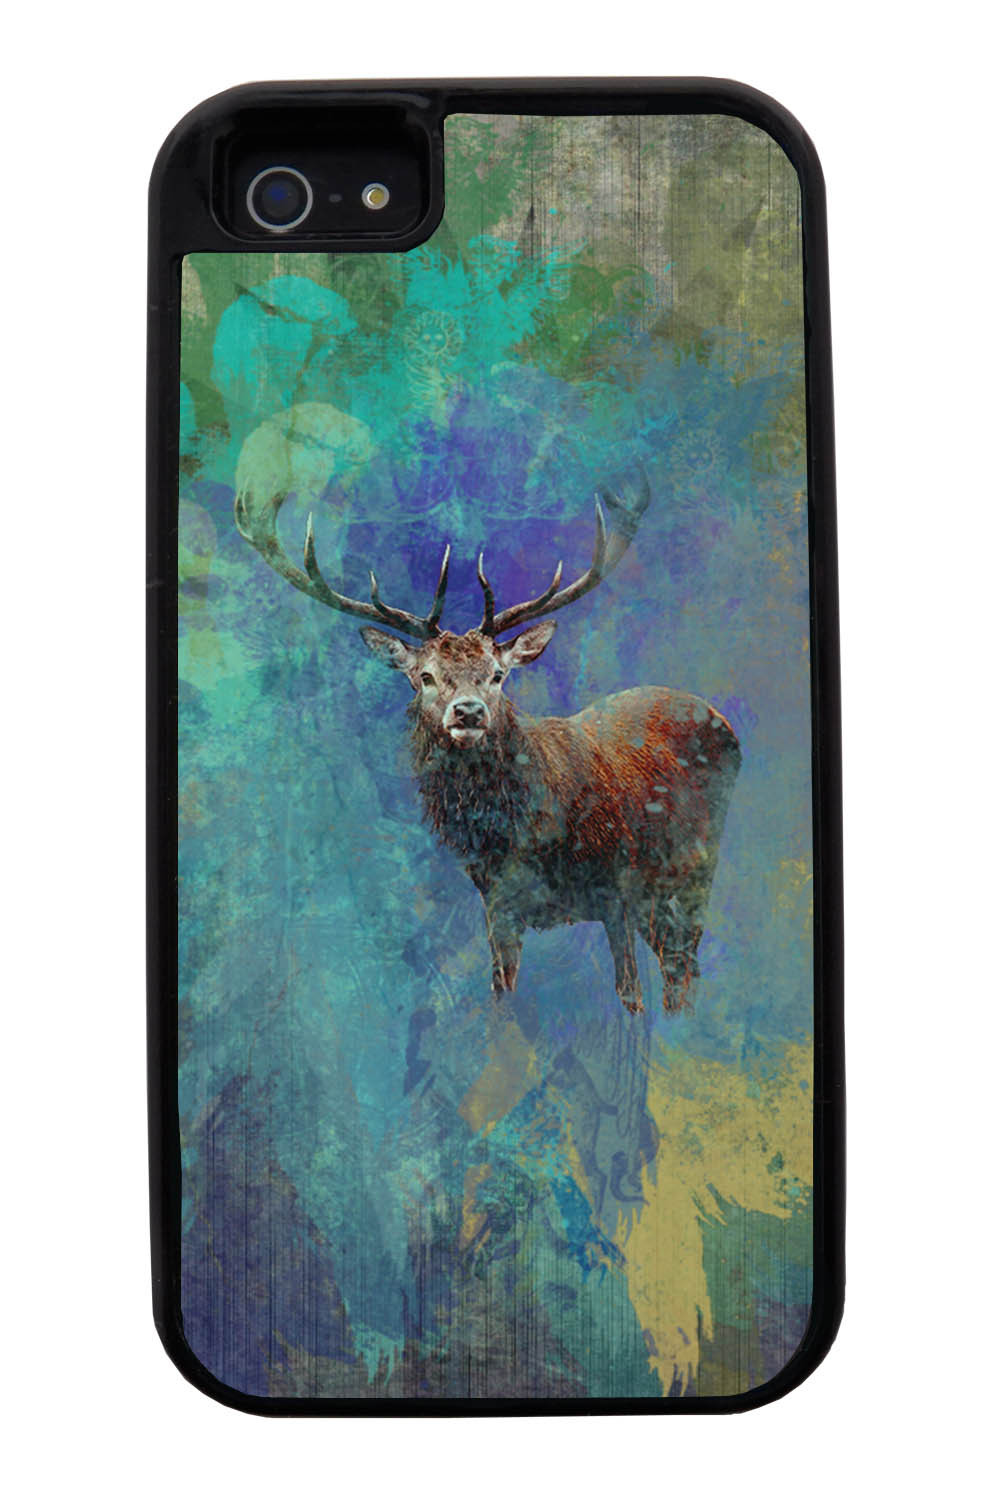 Apple iPhone 5 / 5S Deer Case - Deer Posturing Photo on Paint Splatter Overlay - Picture - Black Tough Hybrid Case